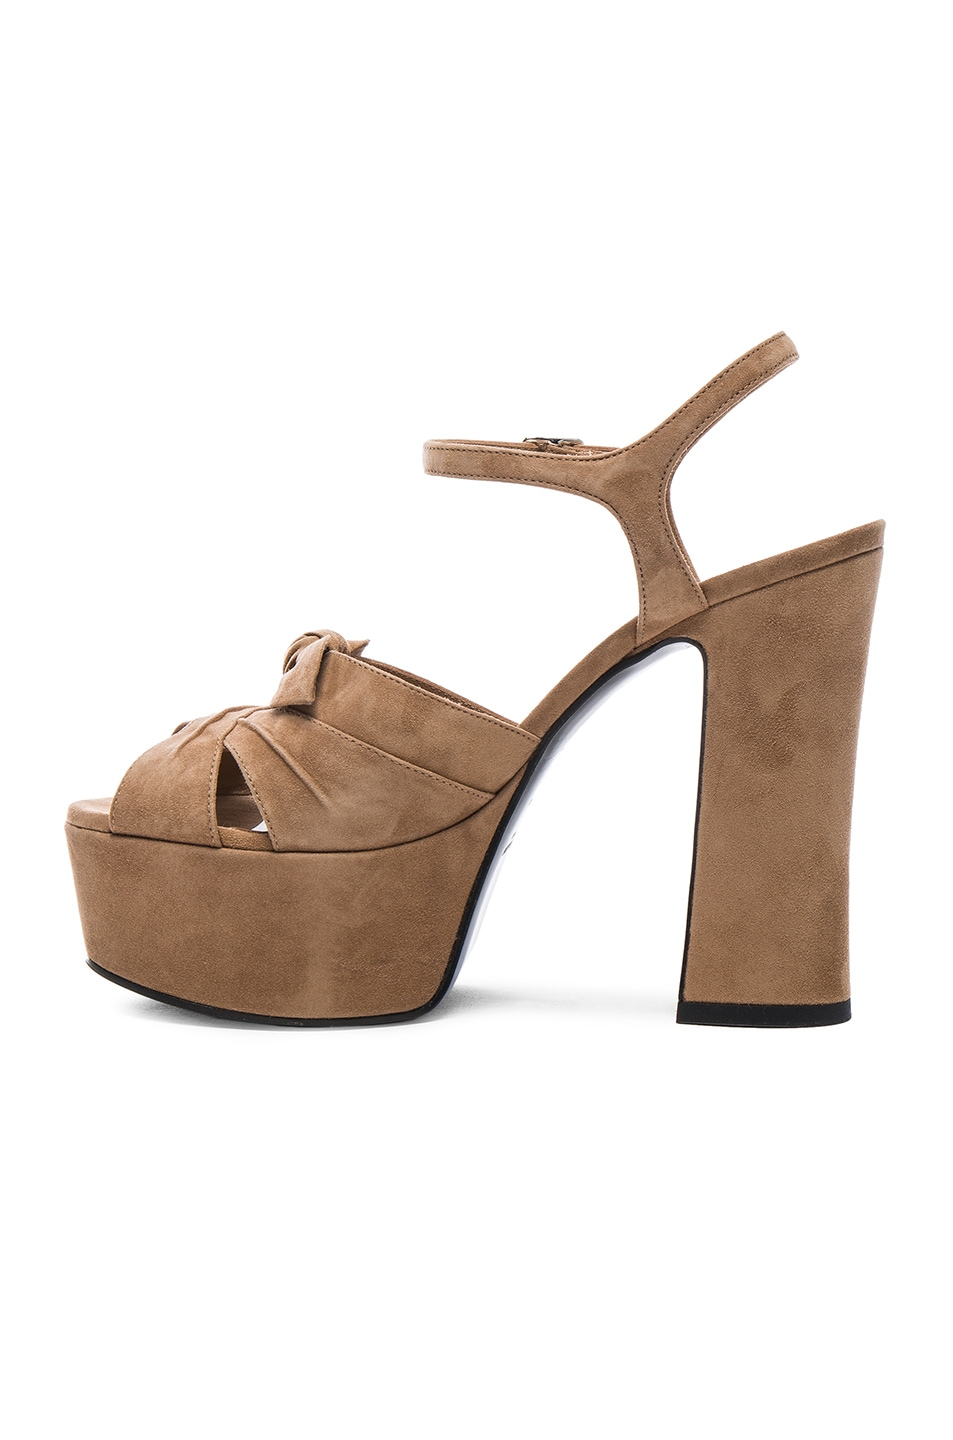 9840ef9d275 Image 5 of Saint Laurent Candy Platform Suede Heels in Chamois